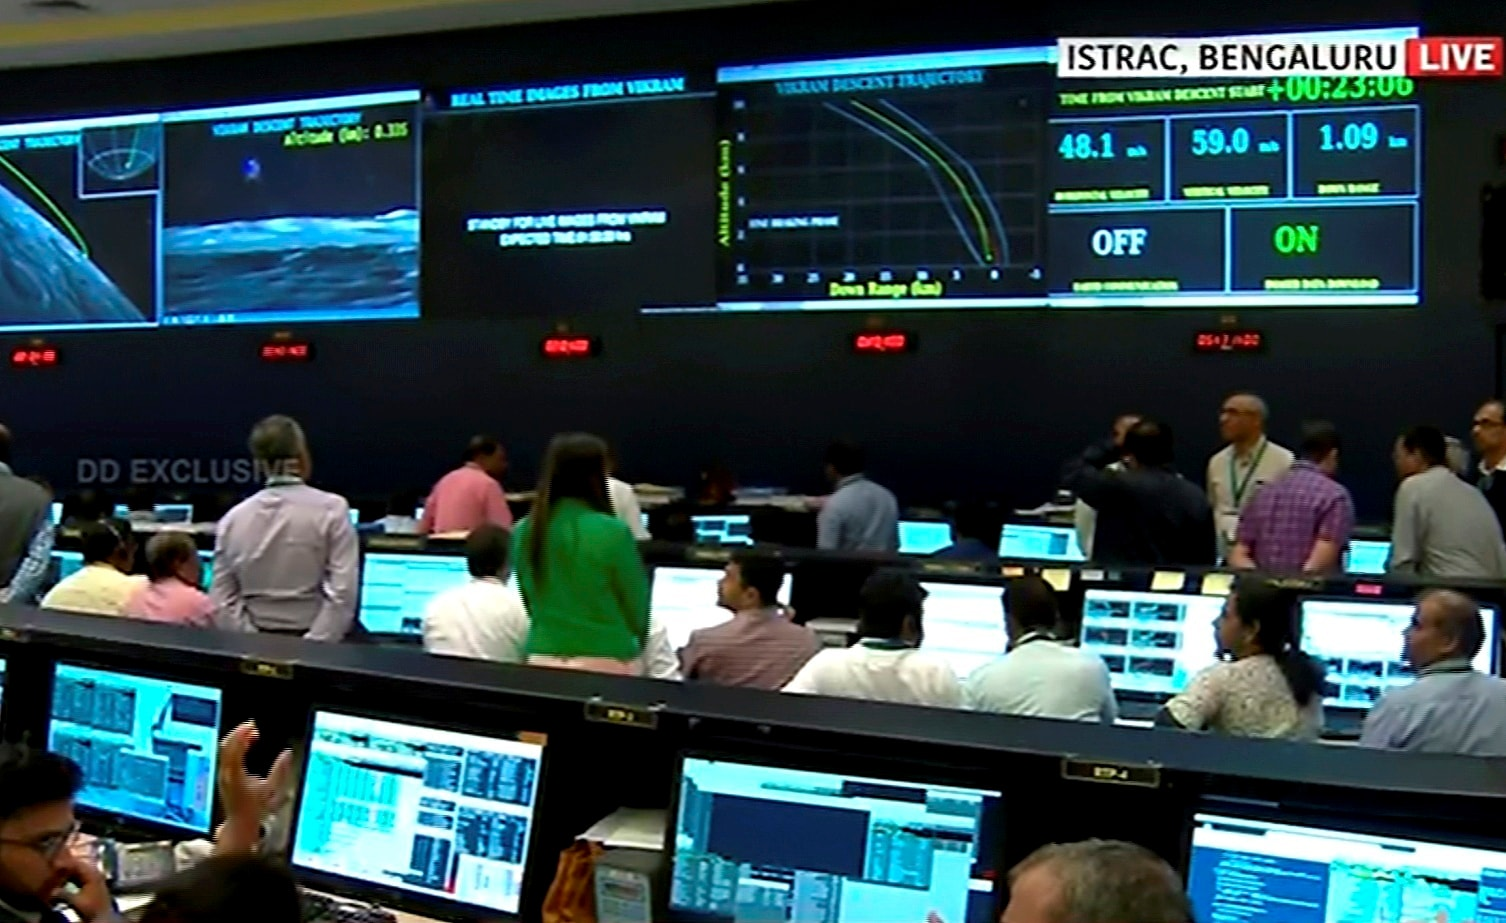 Officials watch the live telecast of the soft landing of Vikram module of Chandrayaan 2 on the lunar surface as it starts 'fine breaking' at ISRO Telemetry Tracking and Command Network (ISTRAC), in Bengaluru, Saturday, Sept. 7, 2019. (PTI Photo)